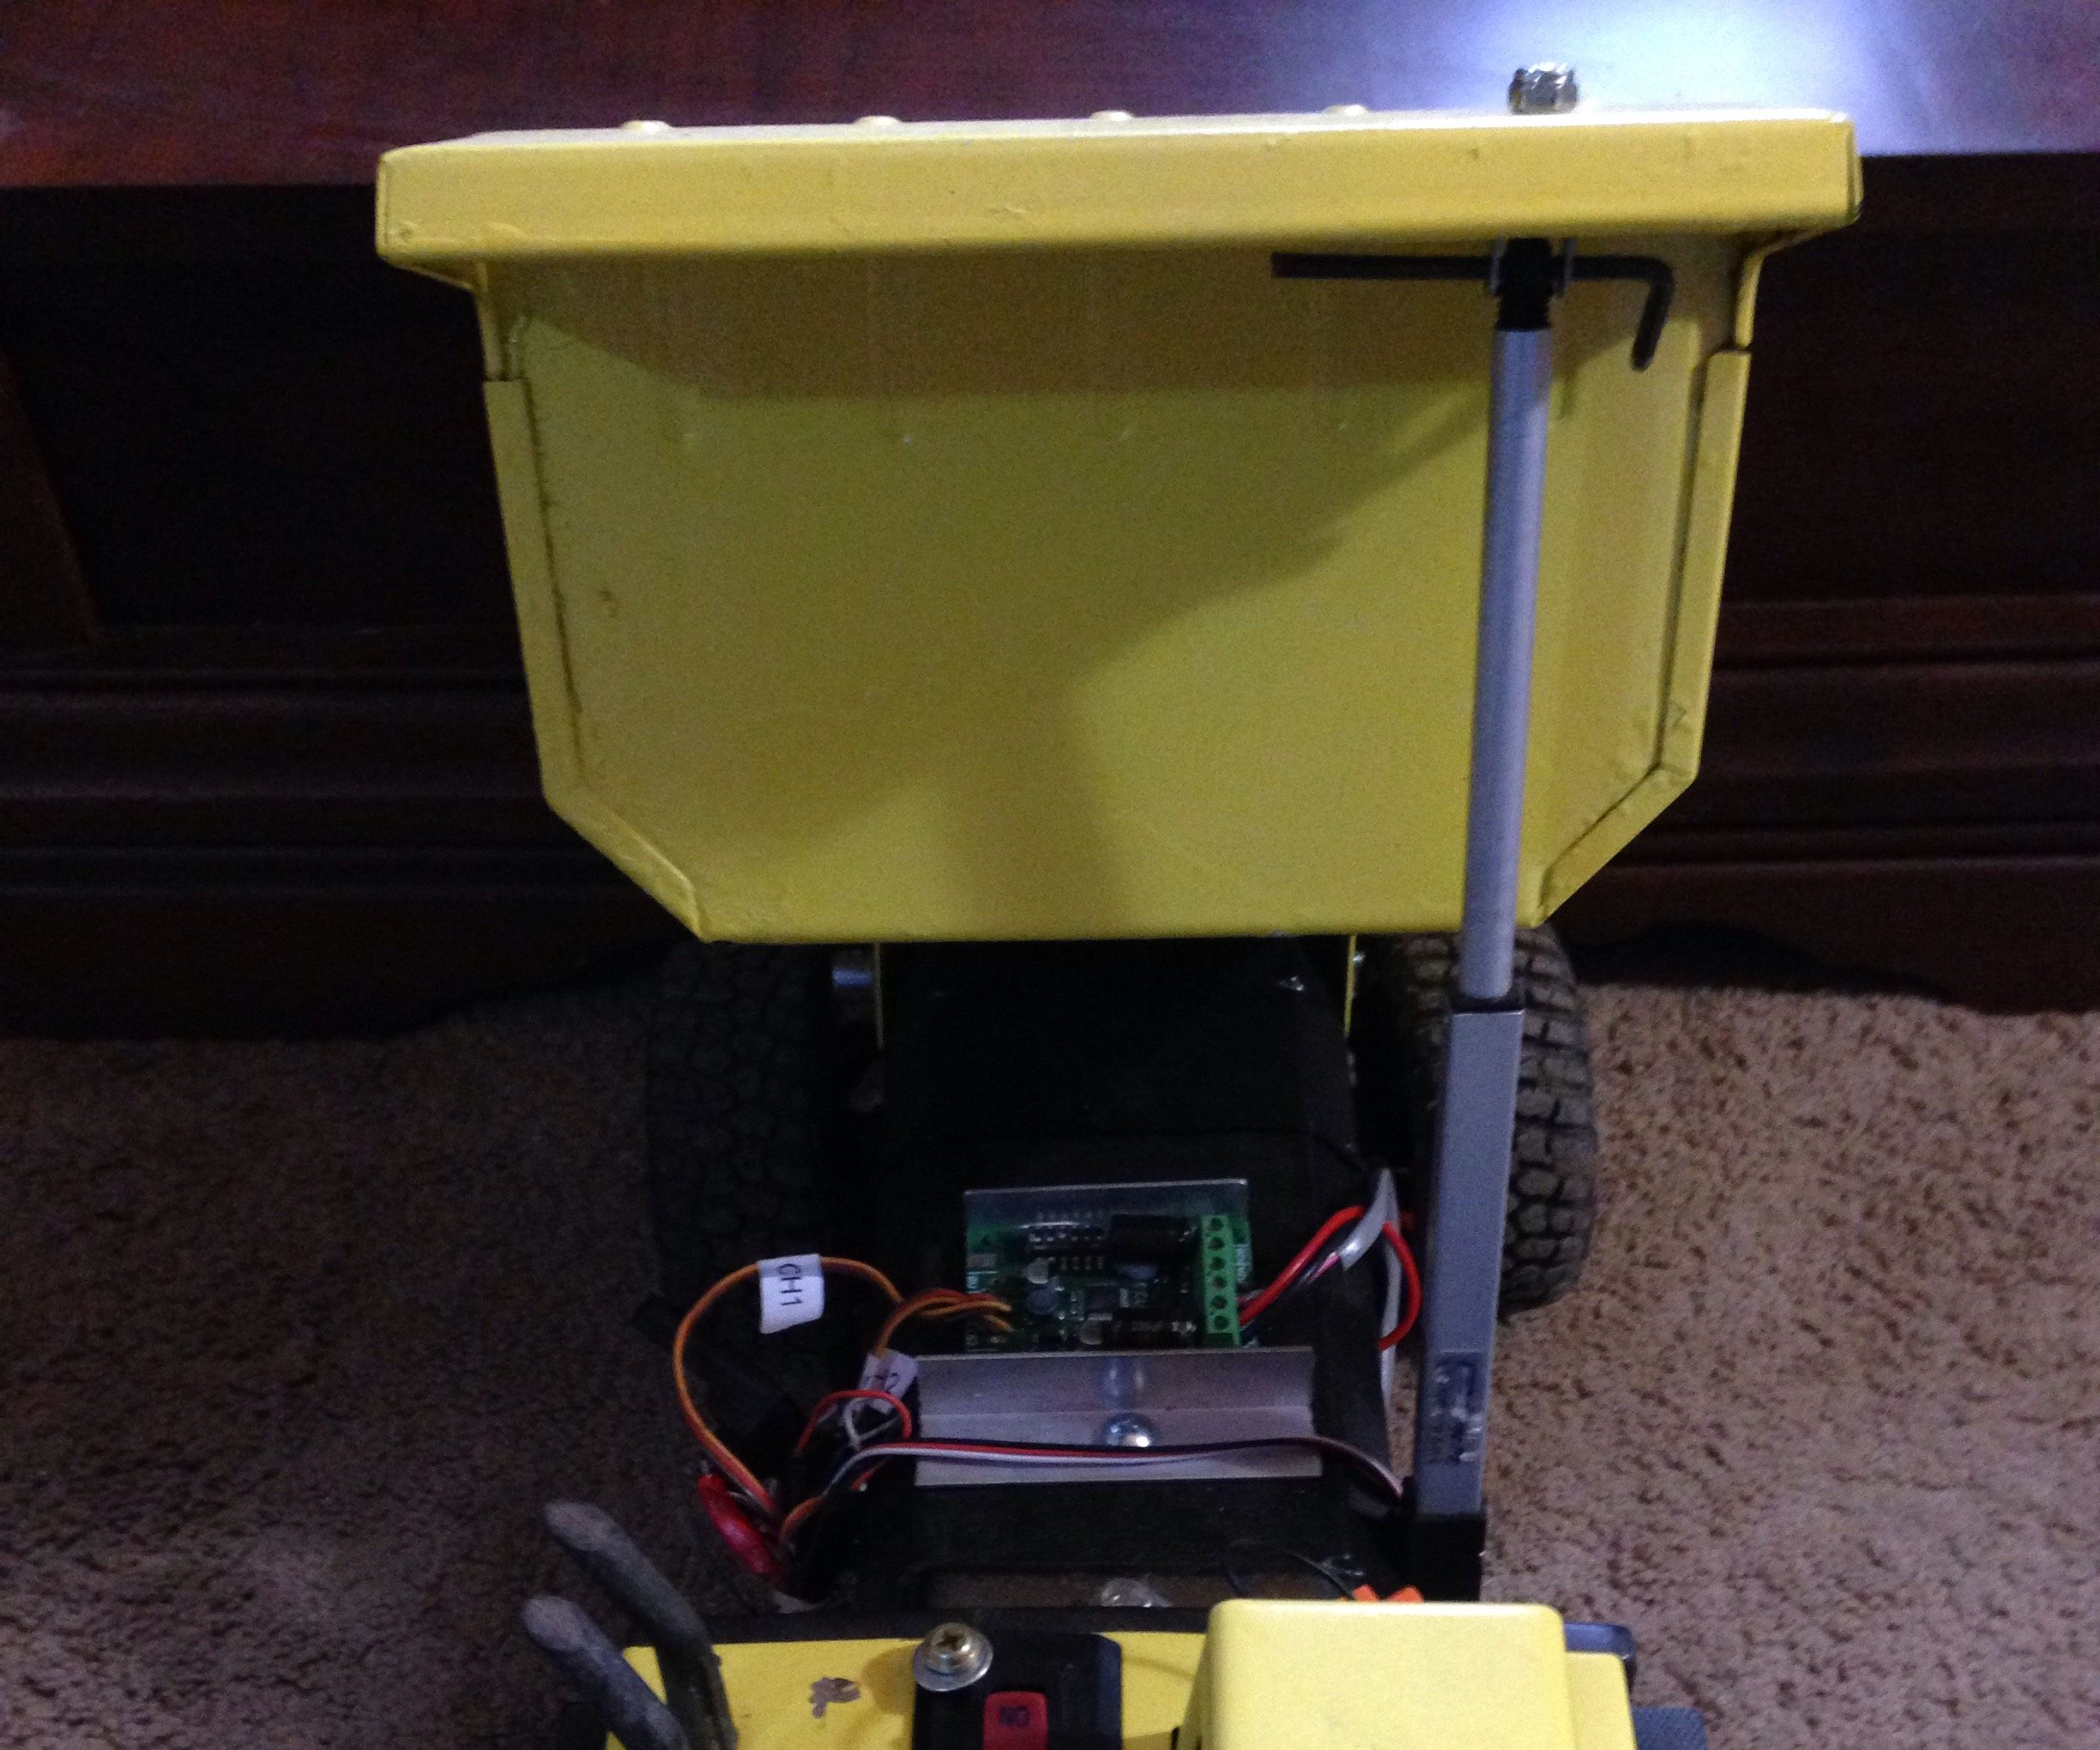 Rc Tonka Dump Truck Conversion With Quad Steering -Part 1 (with solar update to come)